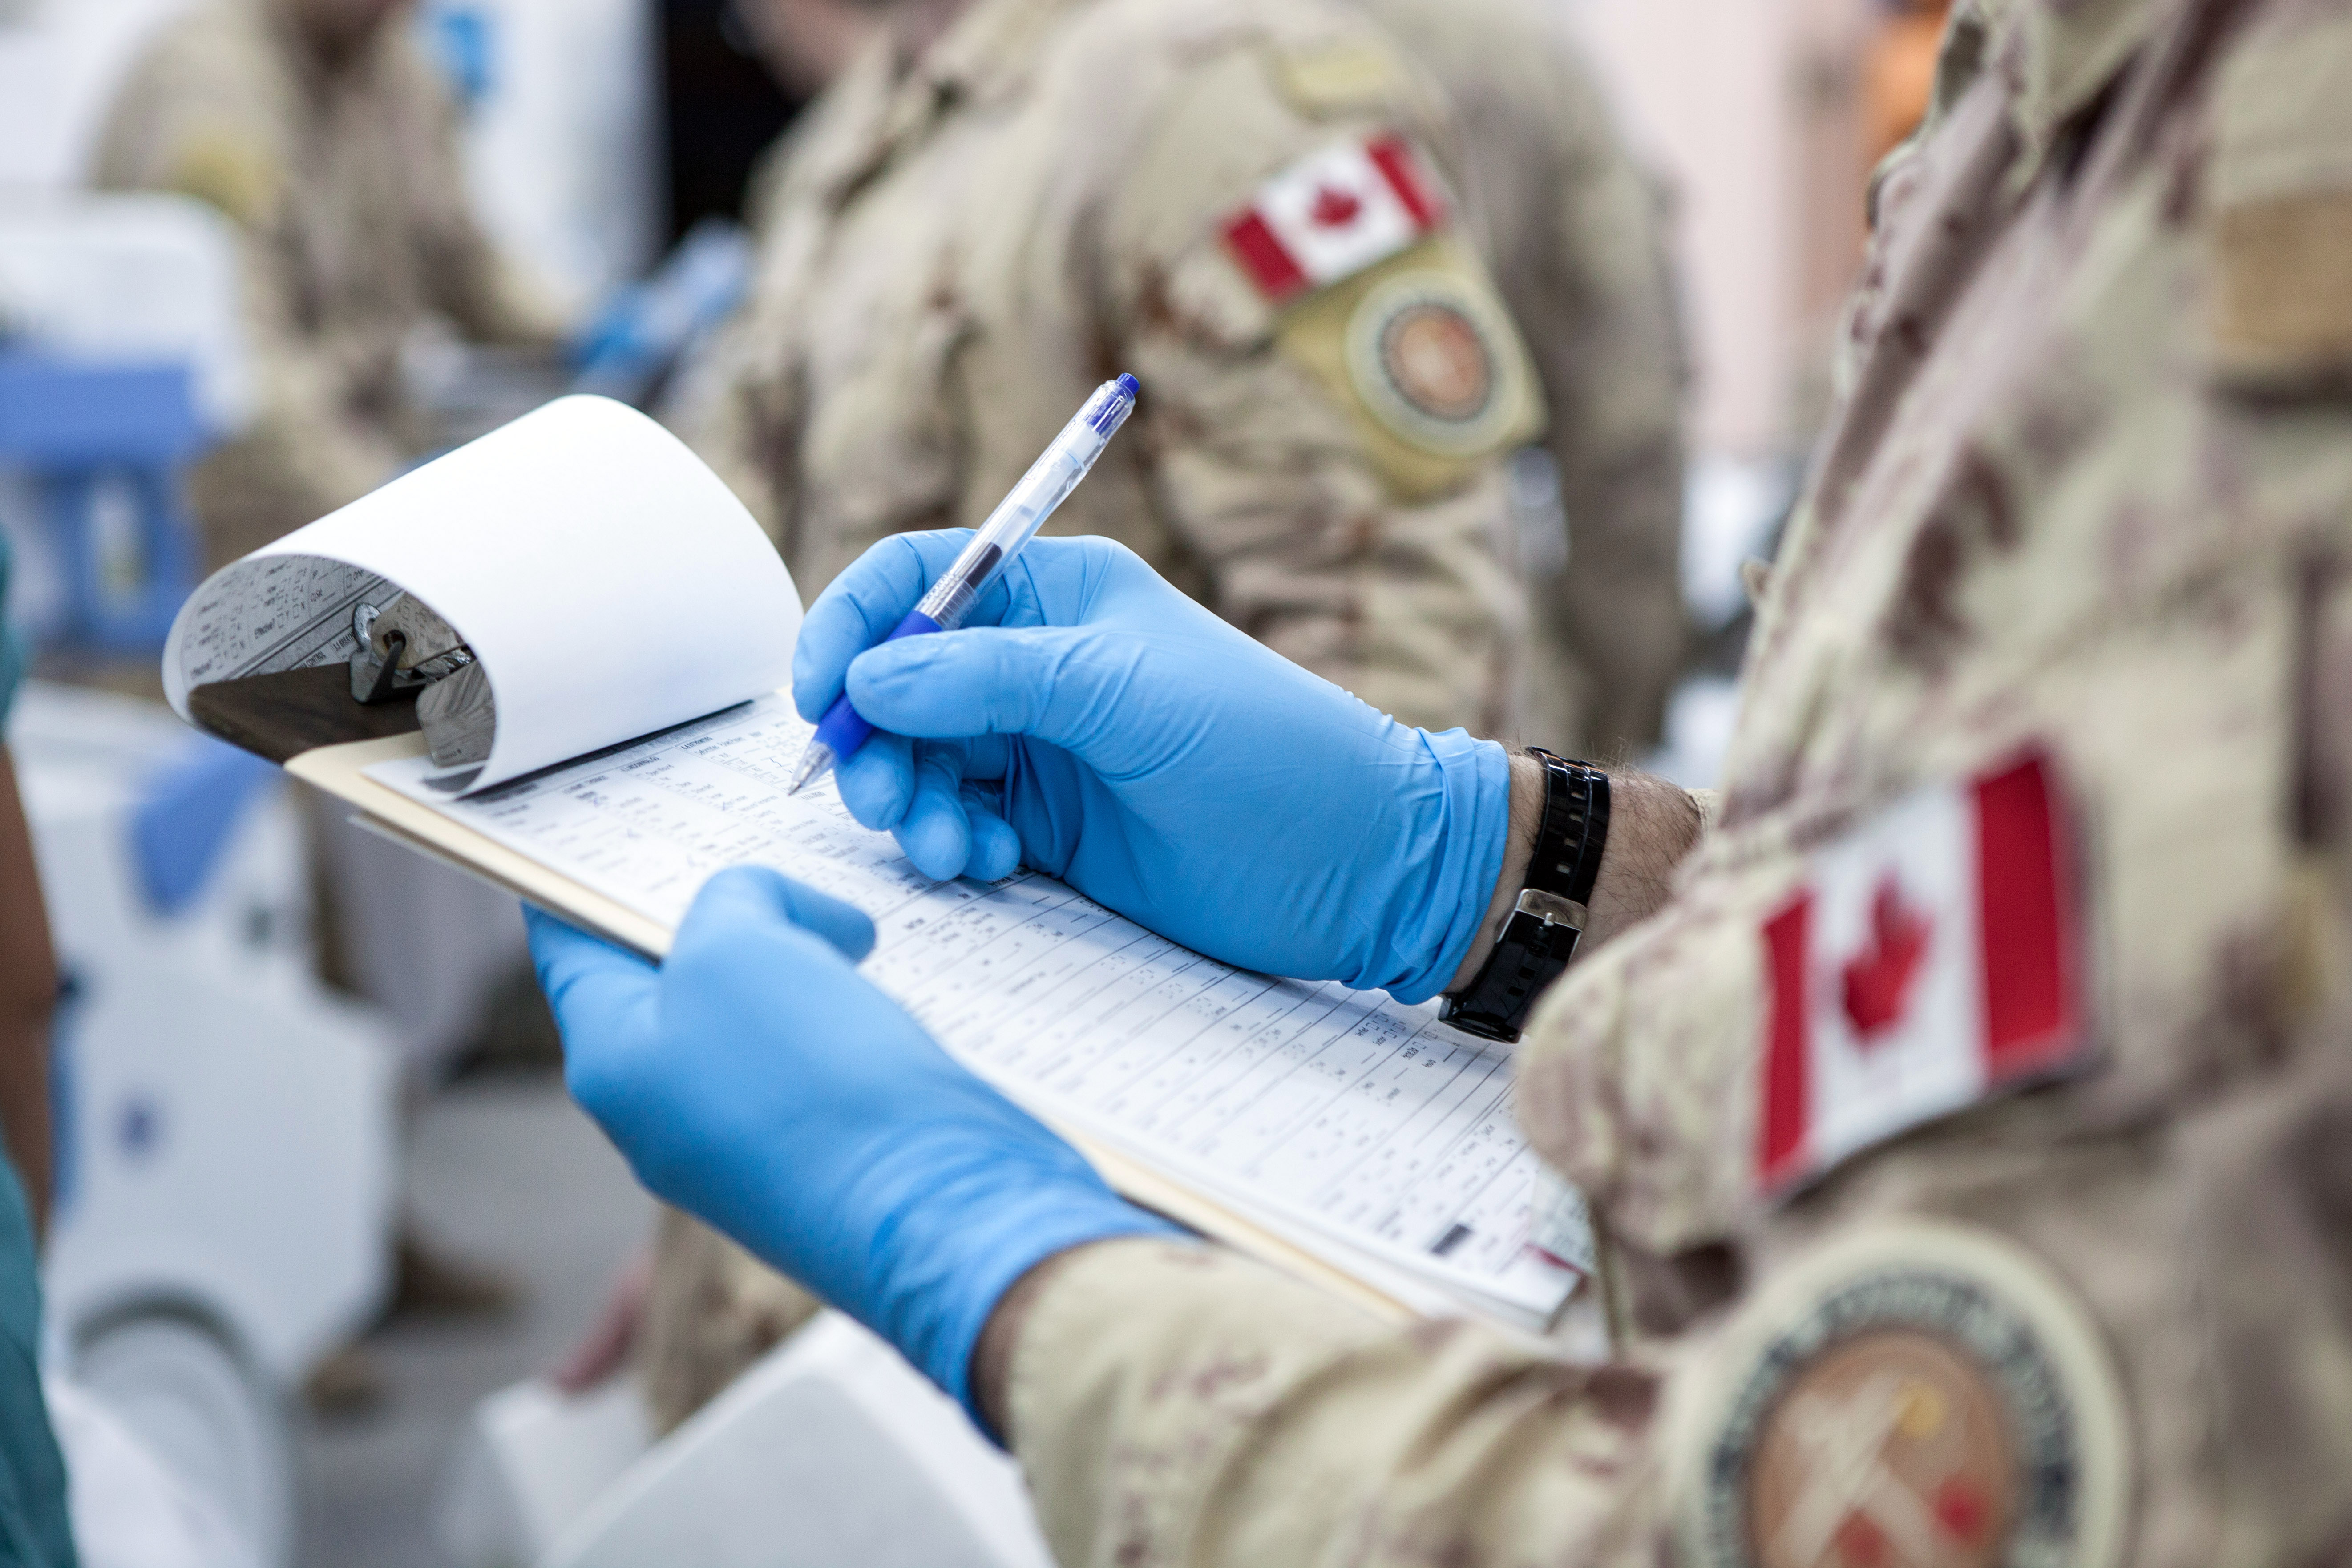 Military medical personnel takes notes.